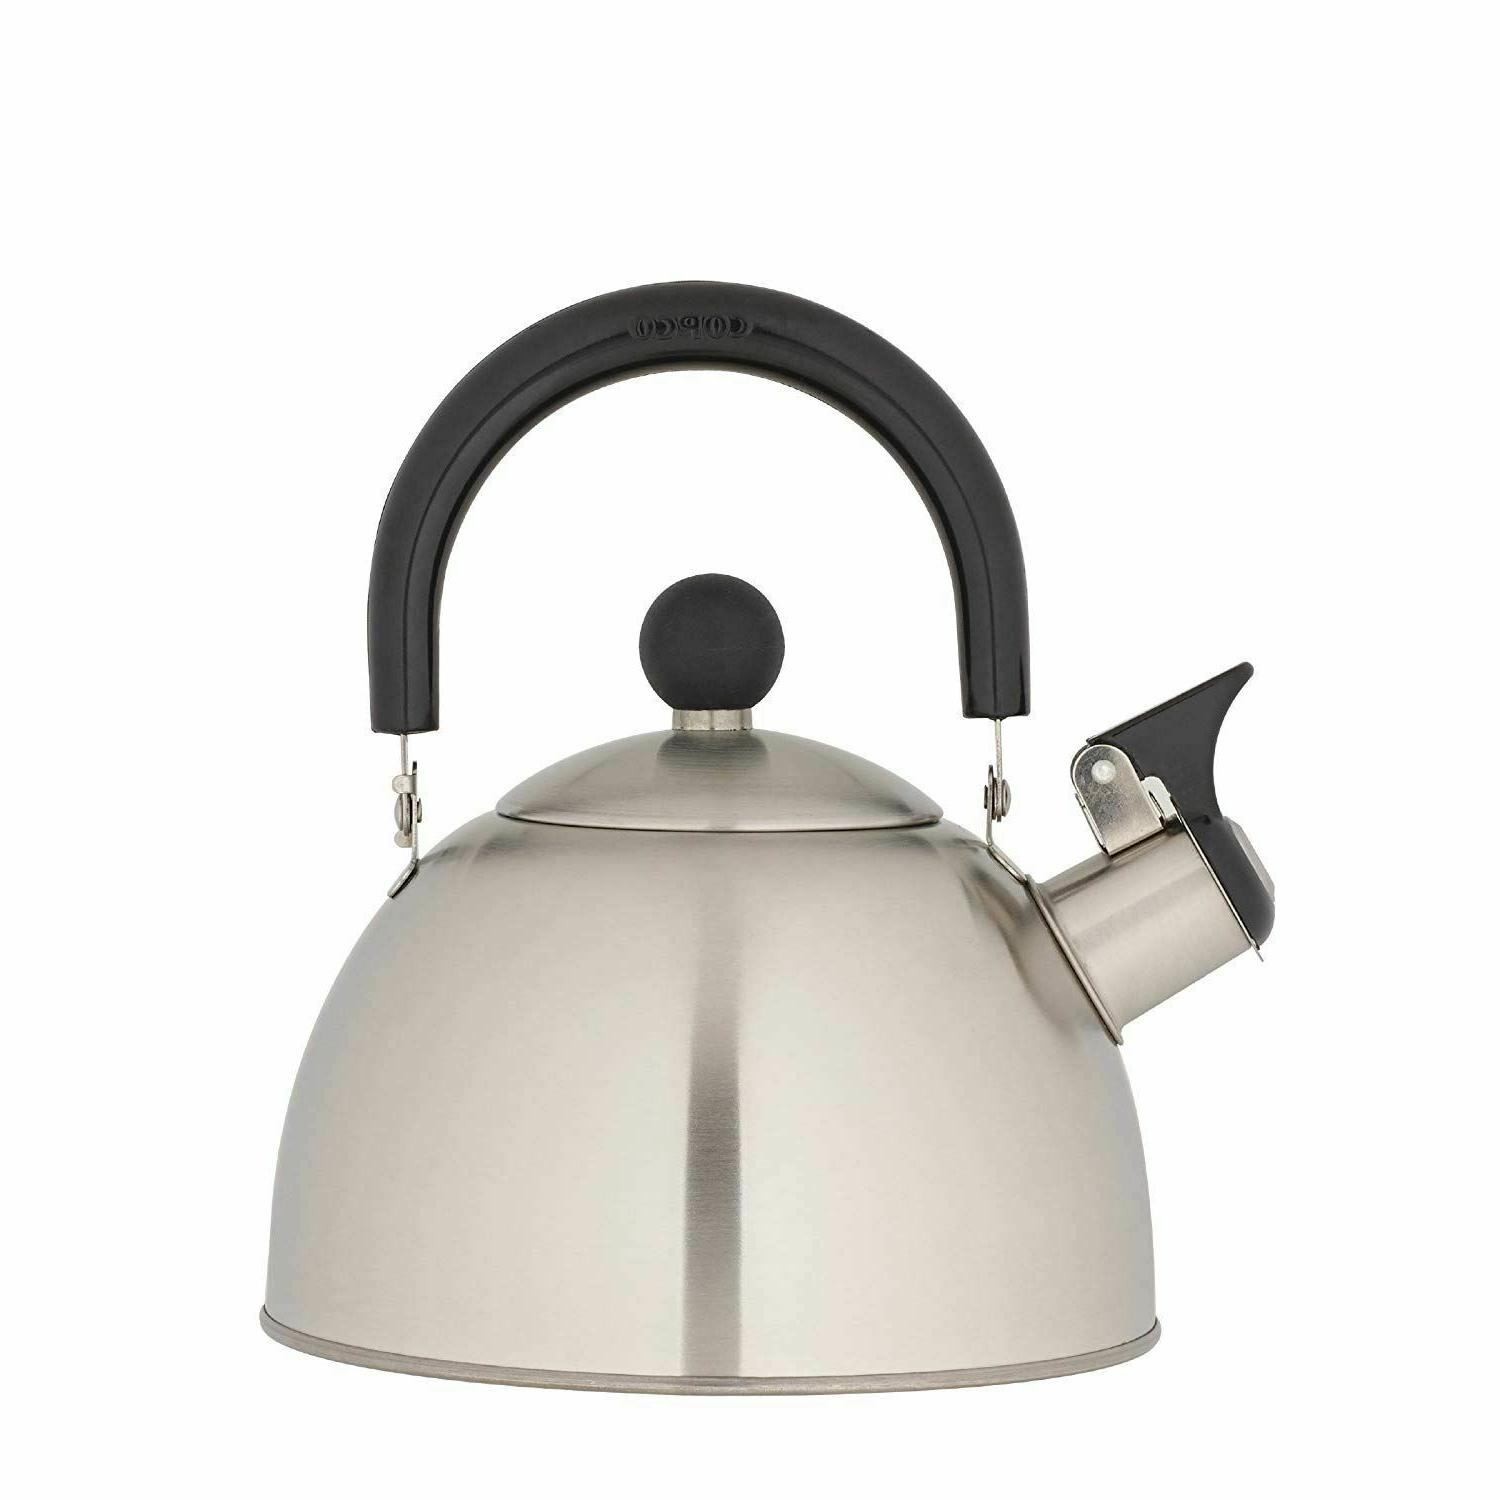 Whistling Tea Kettle Stainless Steel StoveTop Teapot Round T